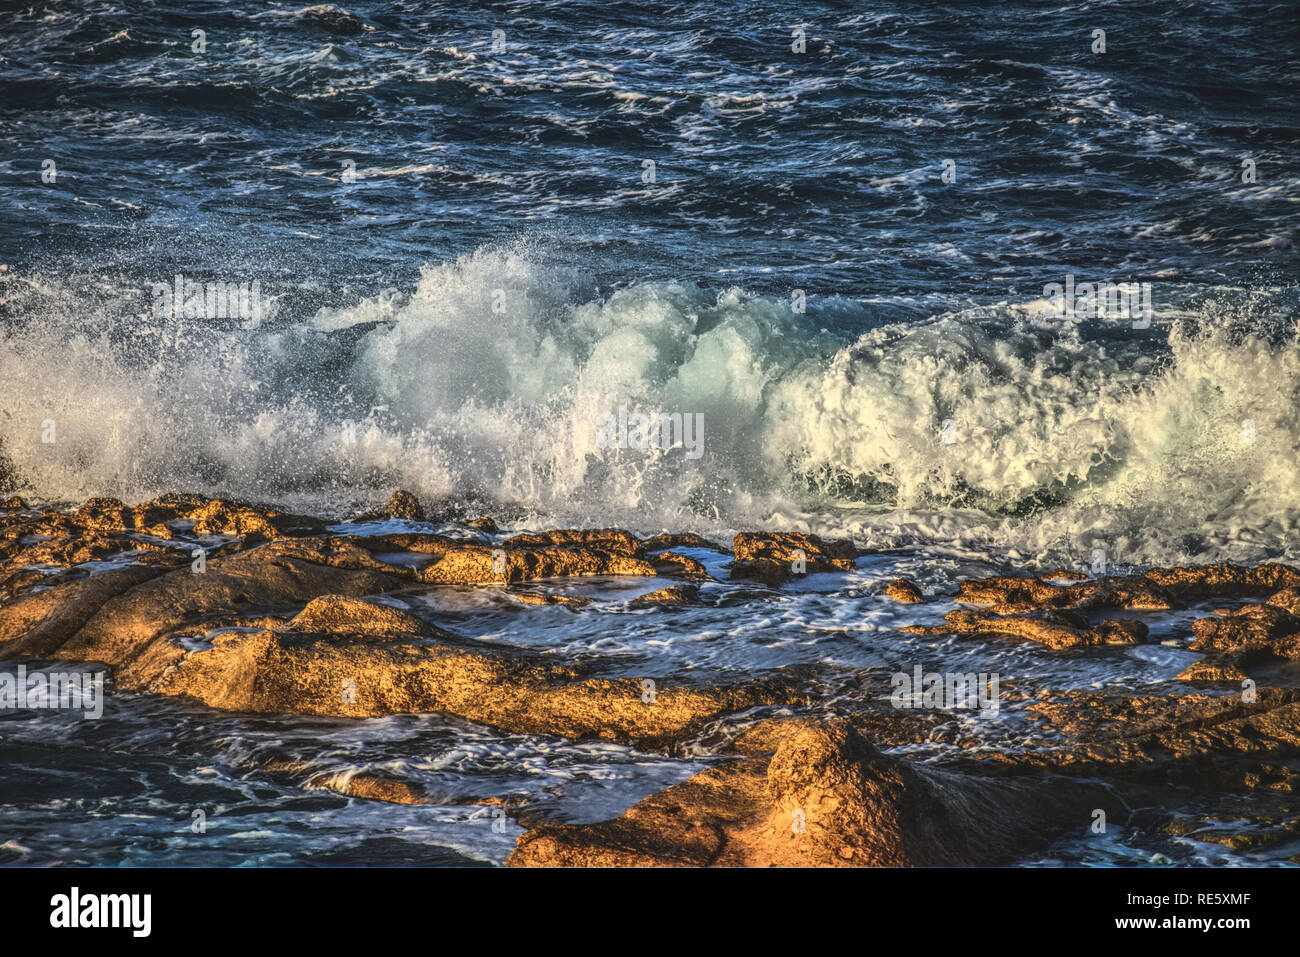 Waves crashing with spray onto rocks on the shore at sunset - Stock Image